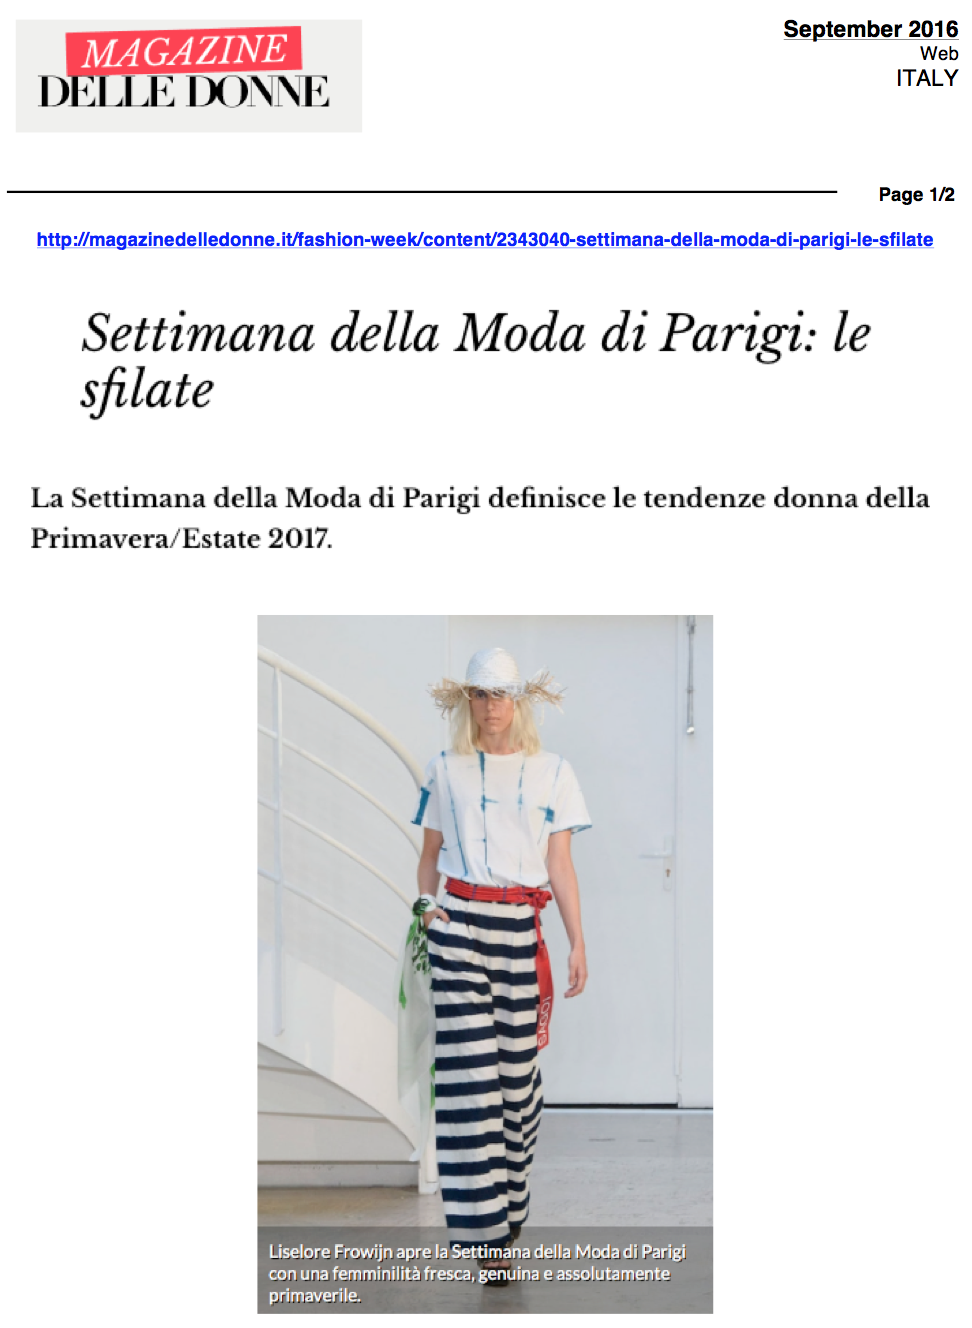 SEPTEMBER 2016 -  MAGAZINE DELLE DONNE 2.png